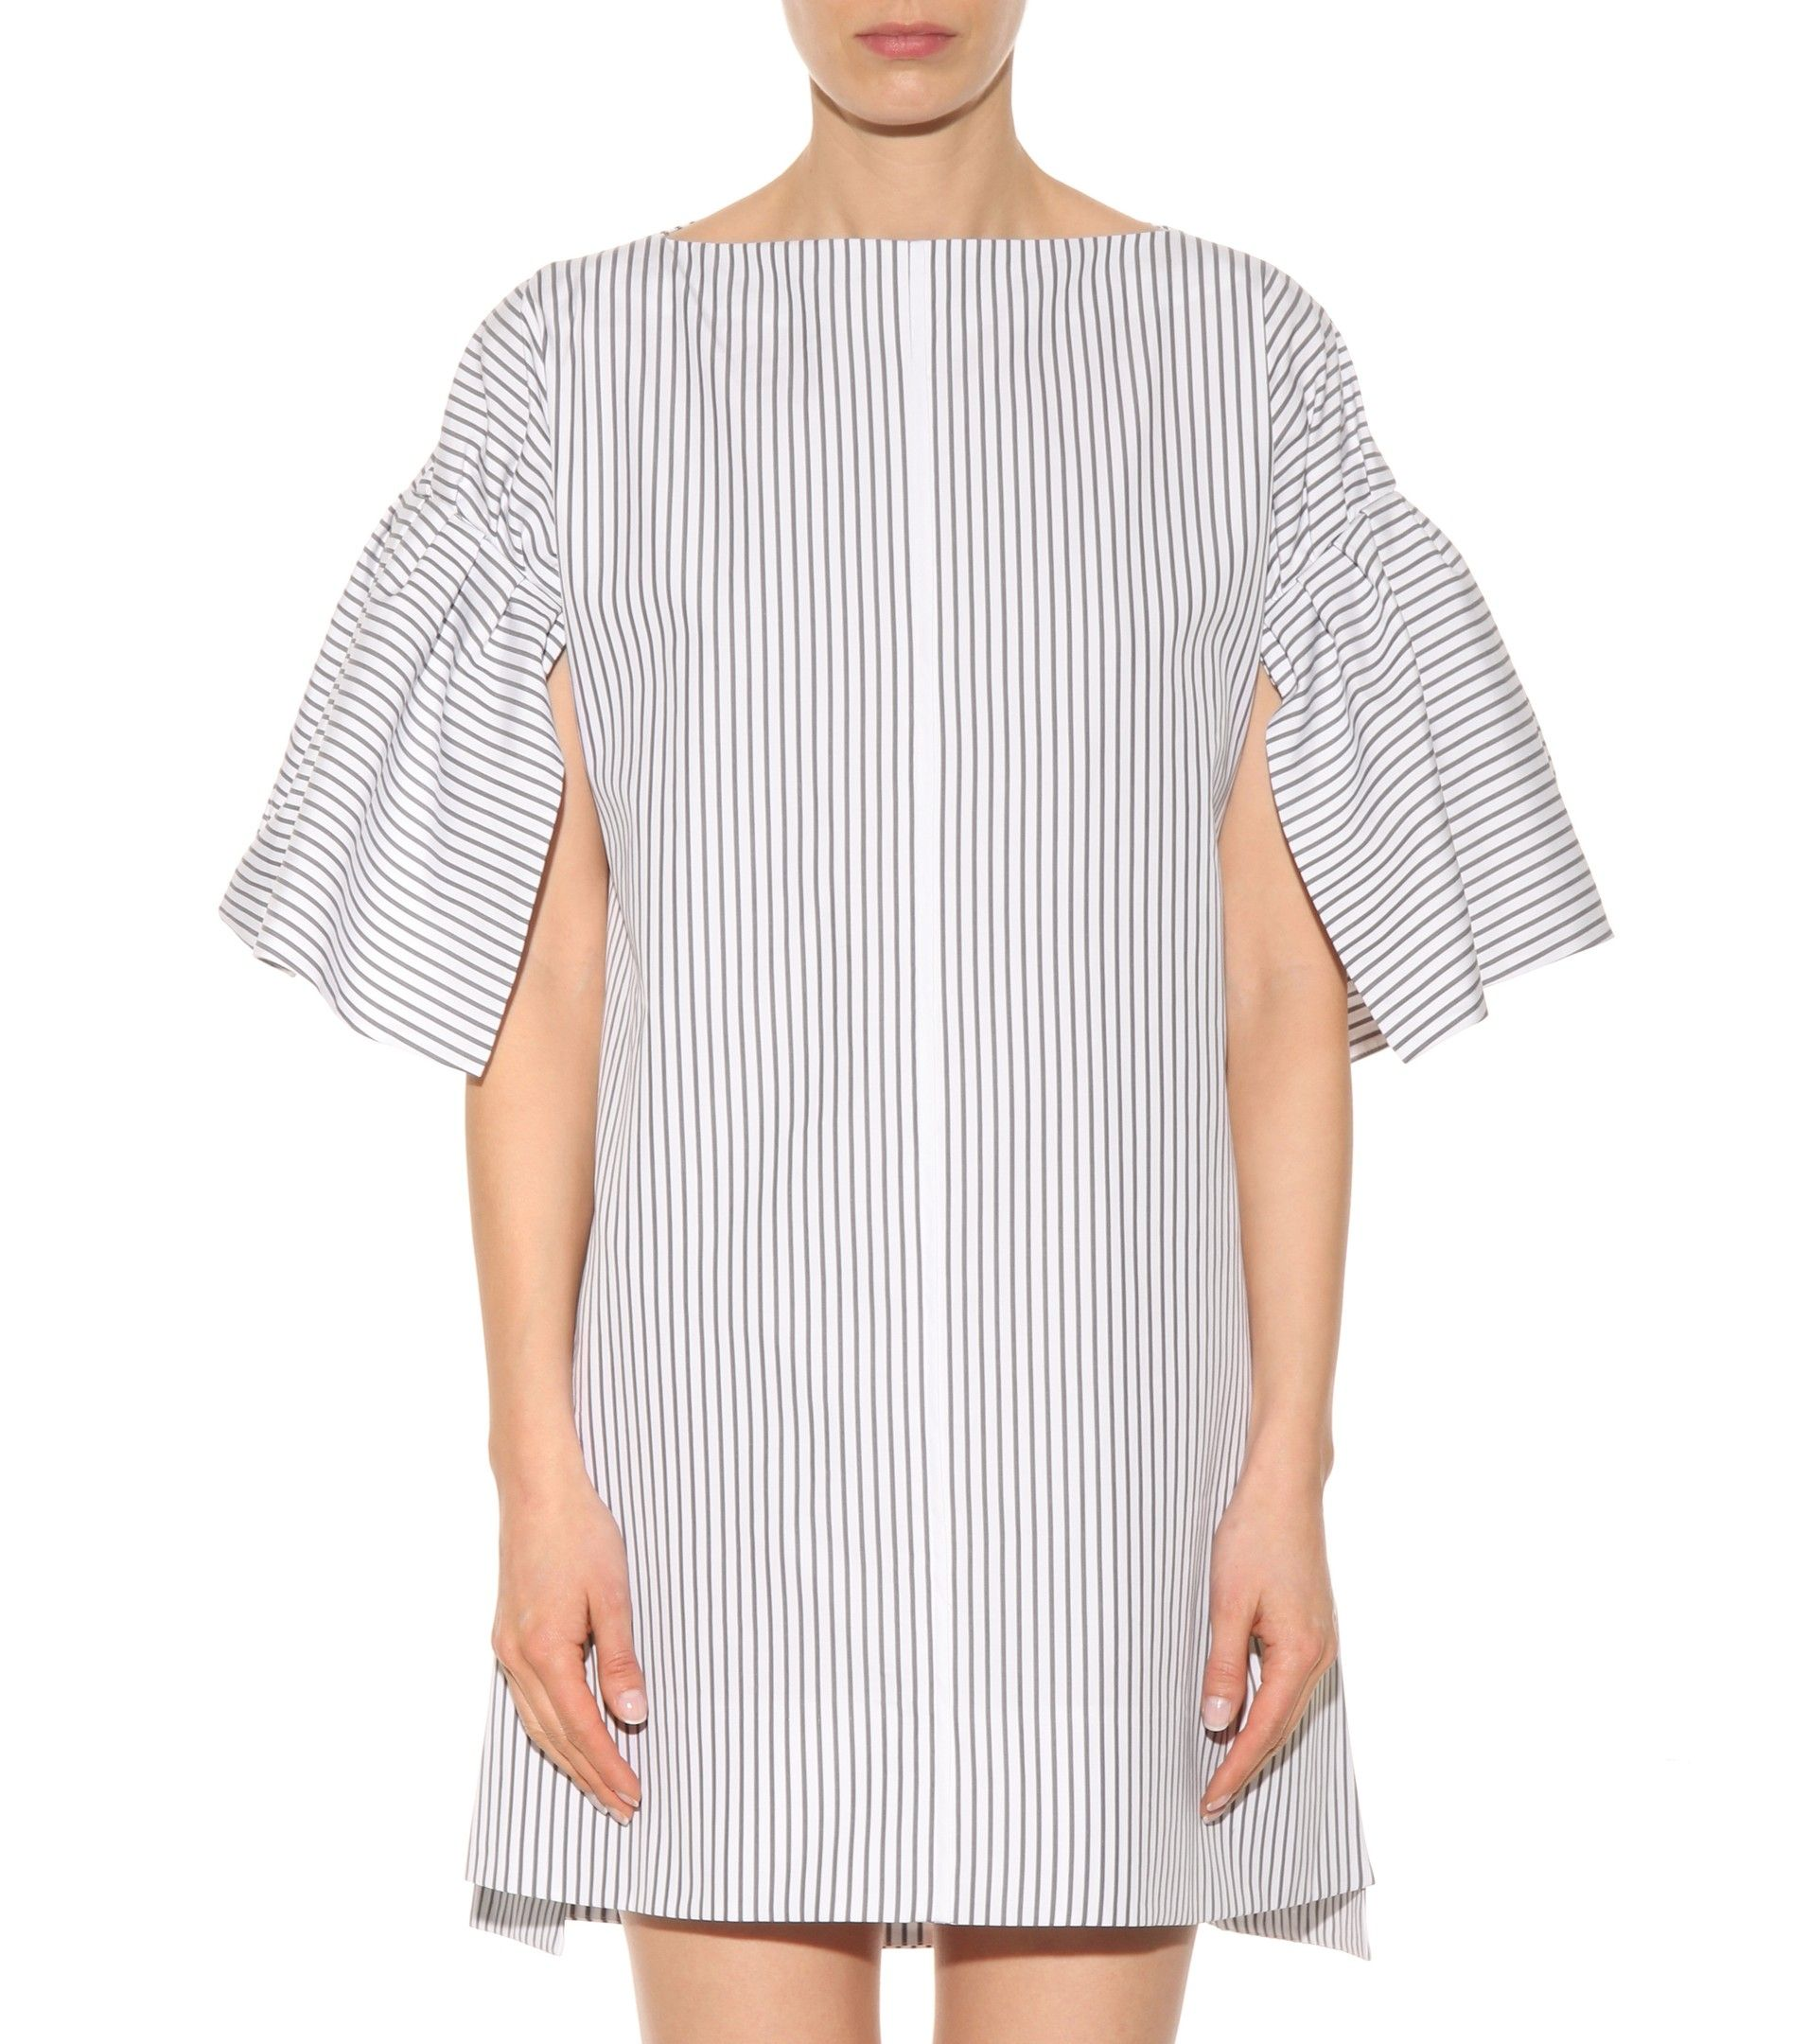 mytheresa.com - Exclusive to mytheresa.com – striped cotton dress - Dresses - Clothing - Luxury Fashion for Women / Designer clothing, shoes, bags